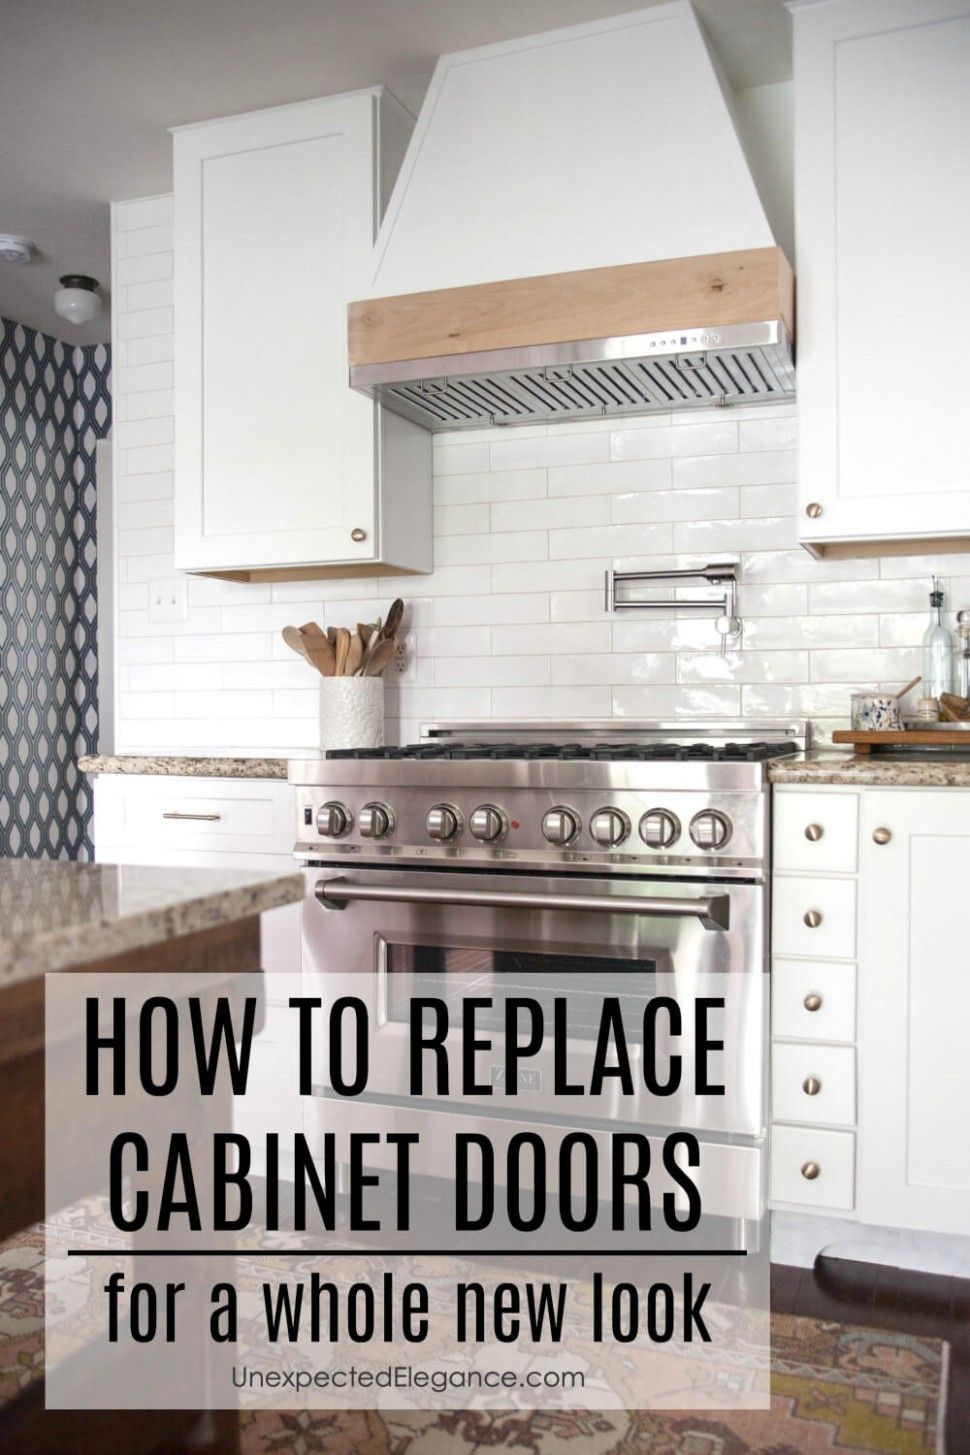 Chaging Doors But Not Kitchen Cabinets